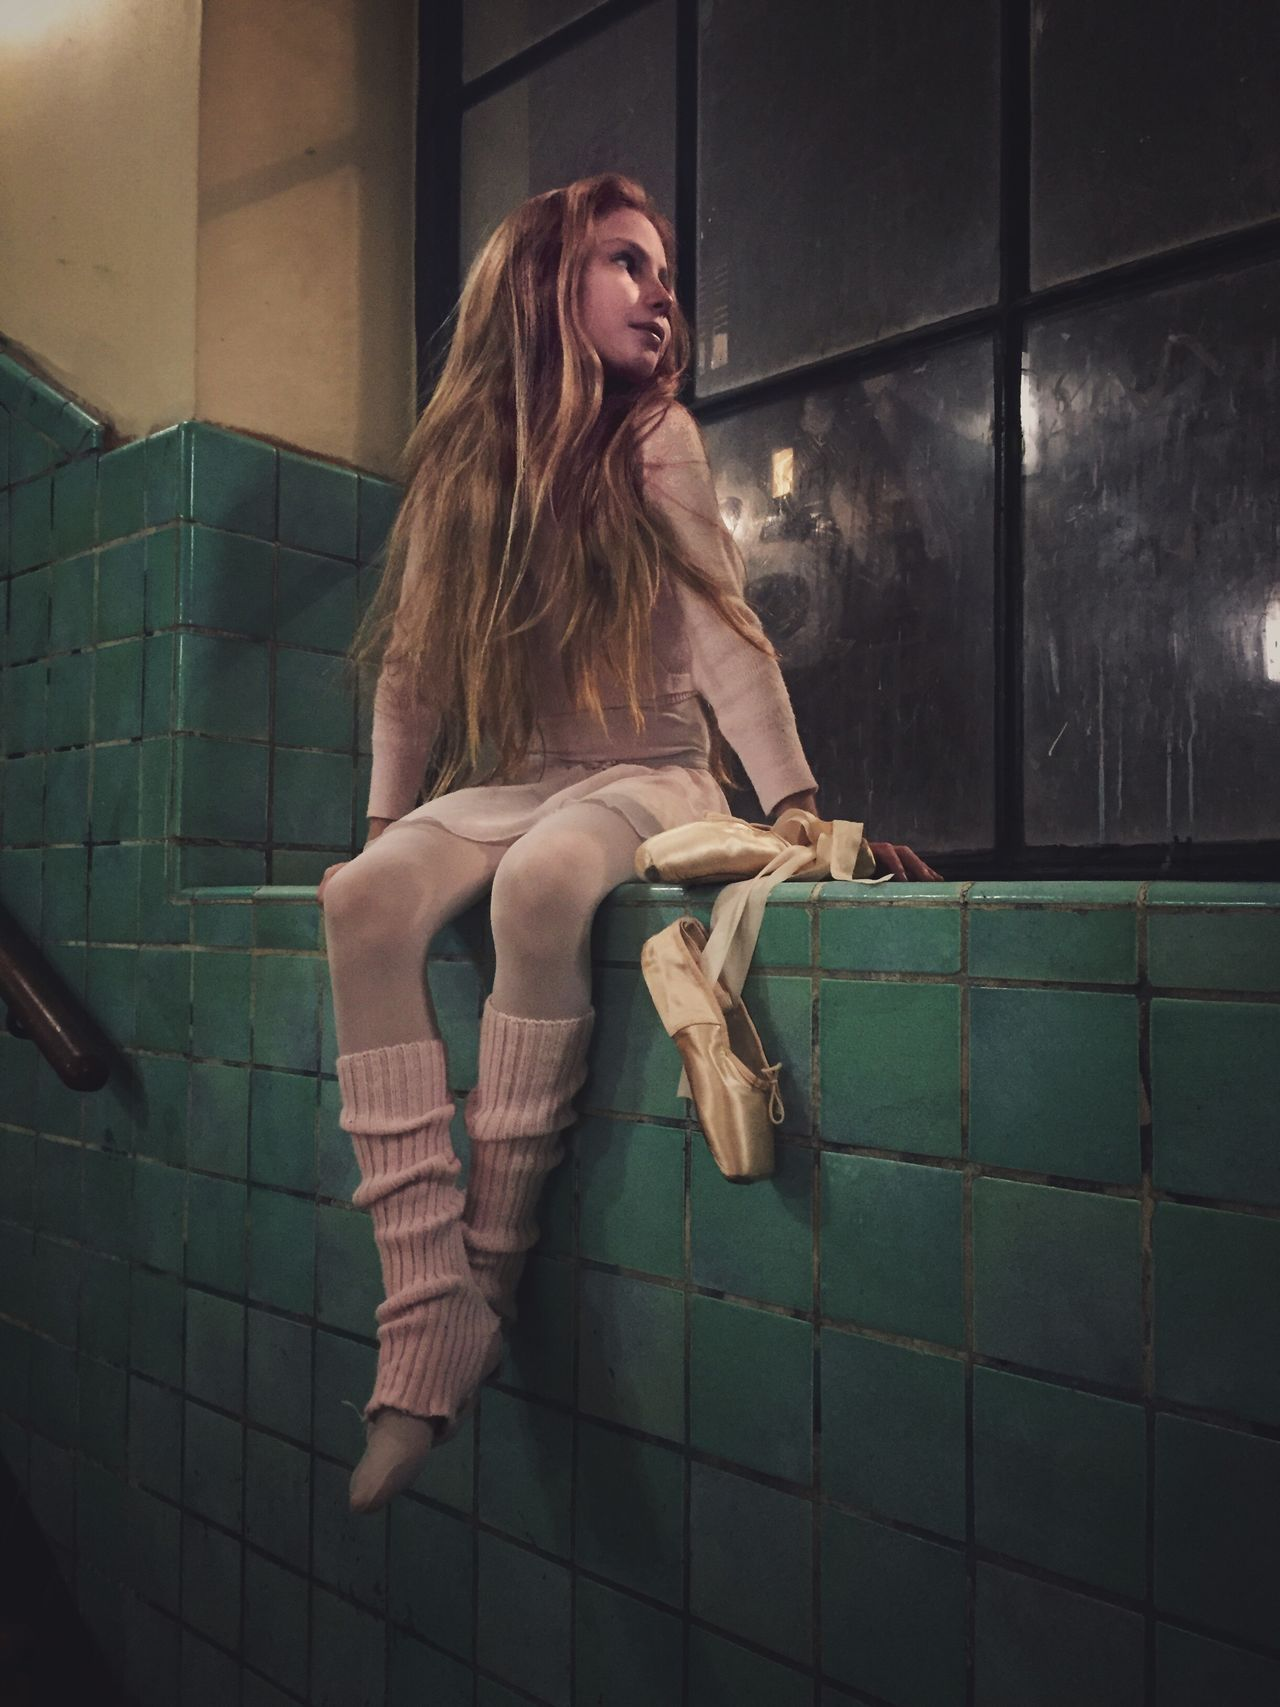 One Person Real People Indoors  Long Hair Lifestyles Full Length Tile Leisure Activity Sitting Bathroom Beauty People Ballet Dancer Ballerina Vintage Looking Away Thinking Girl Night Iphone6 Ballet Shoes light and reflection